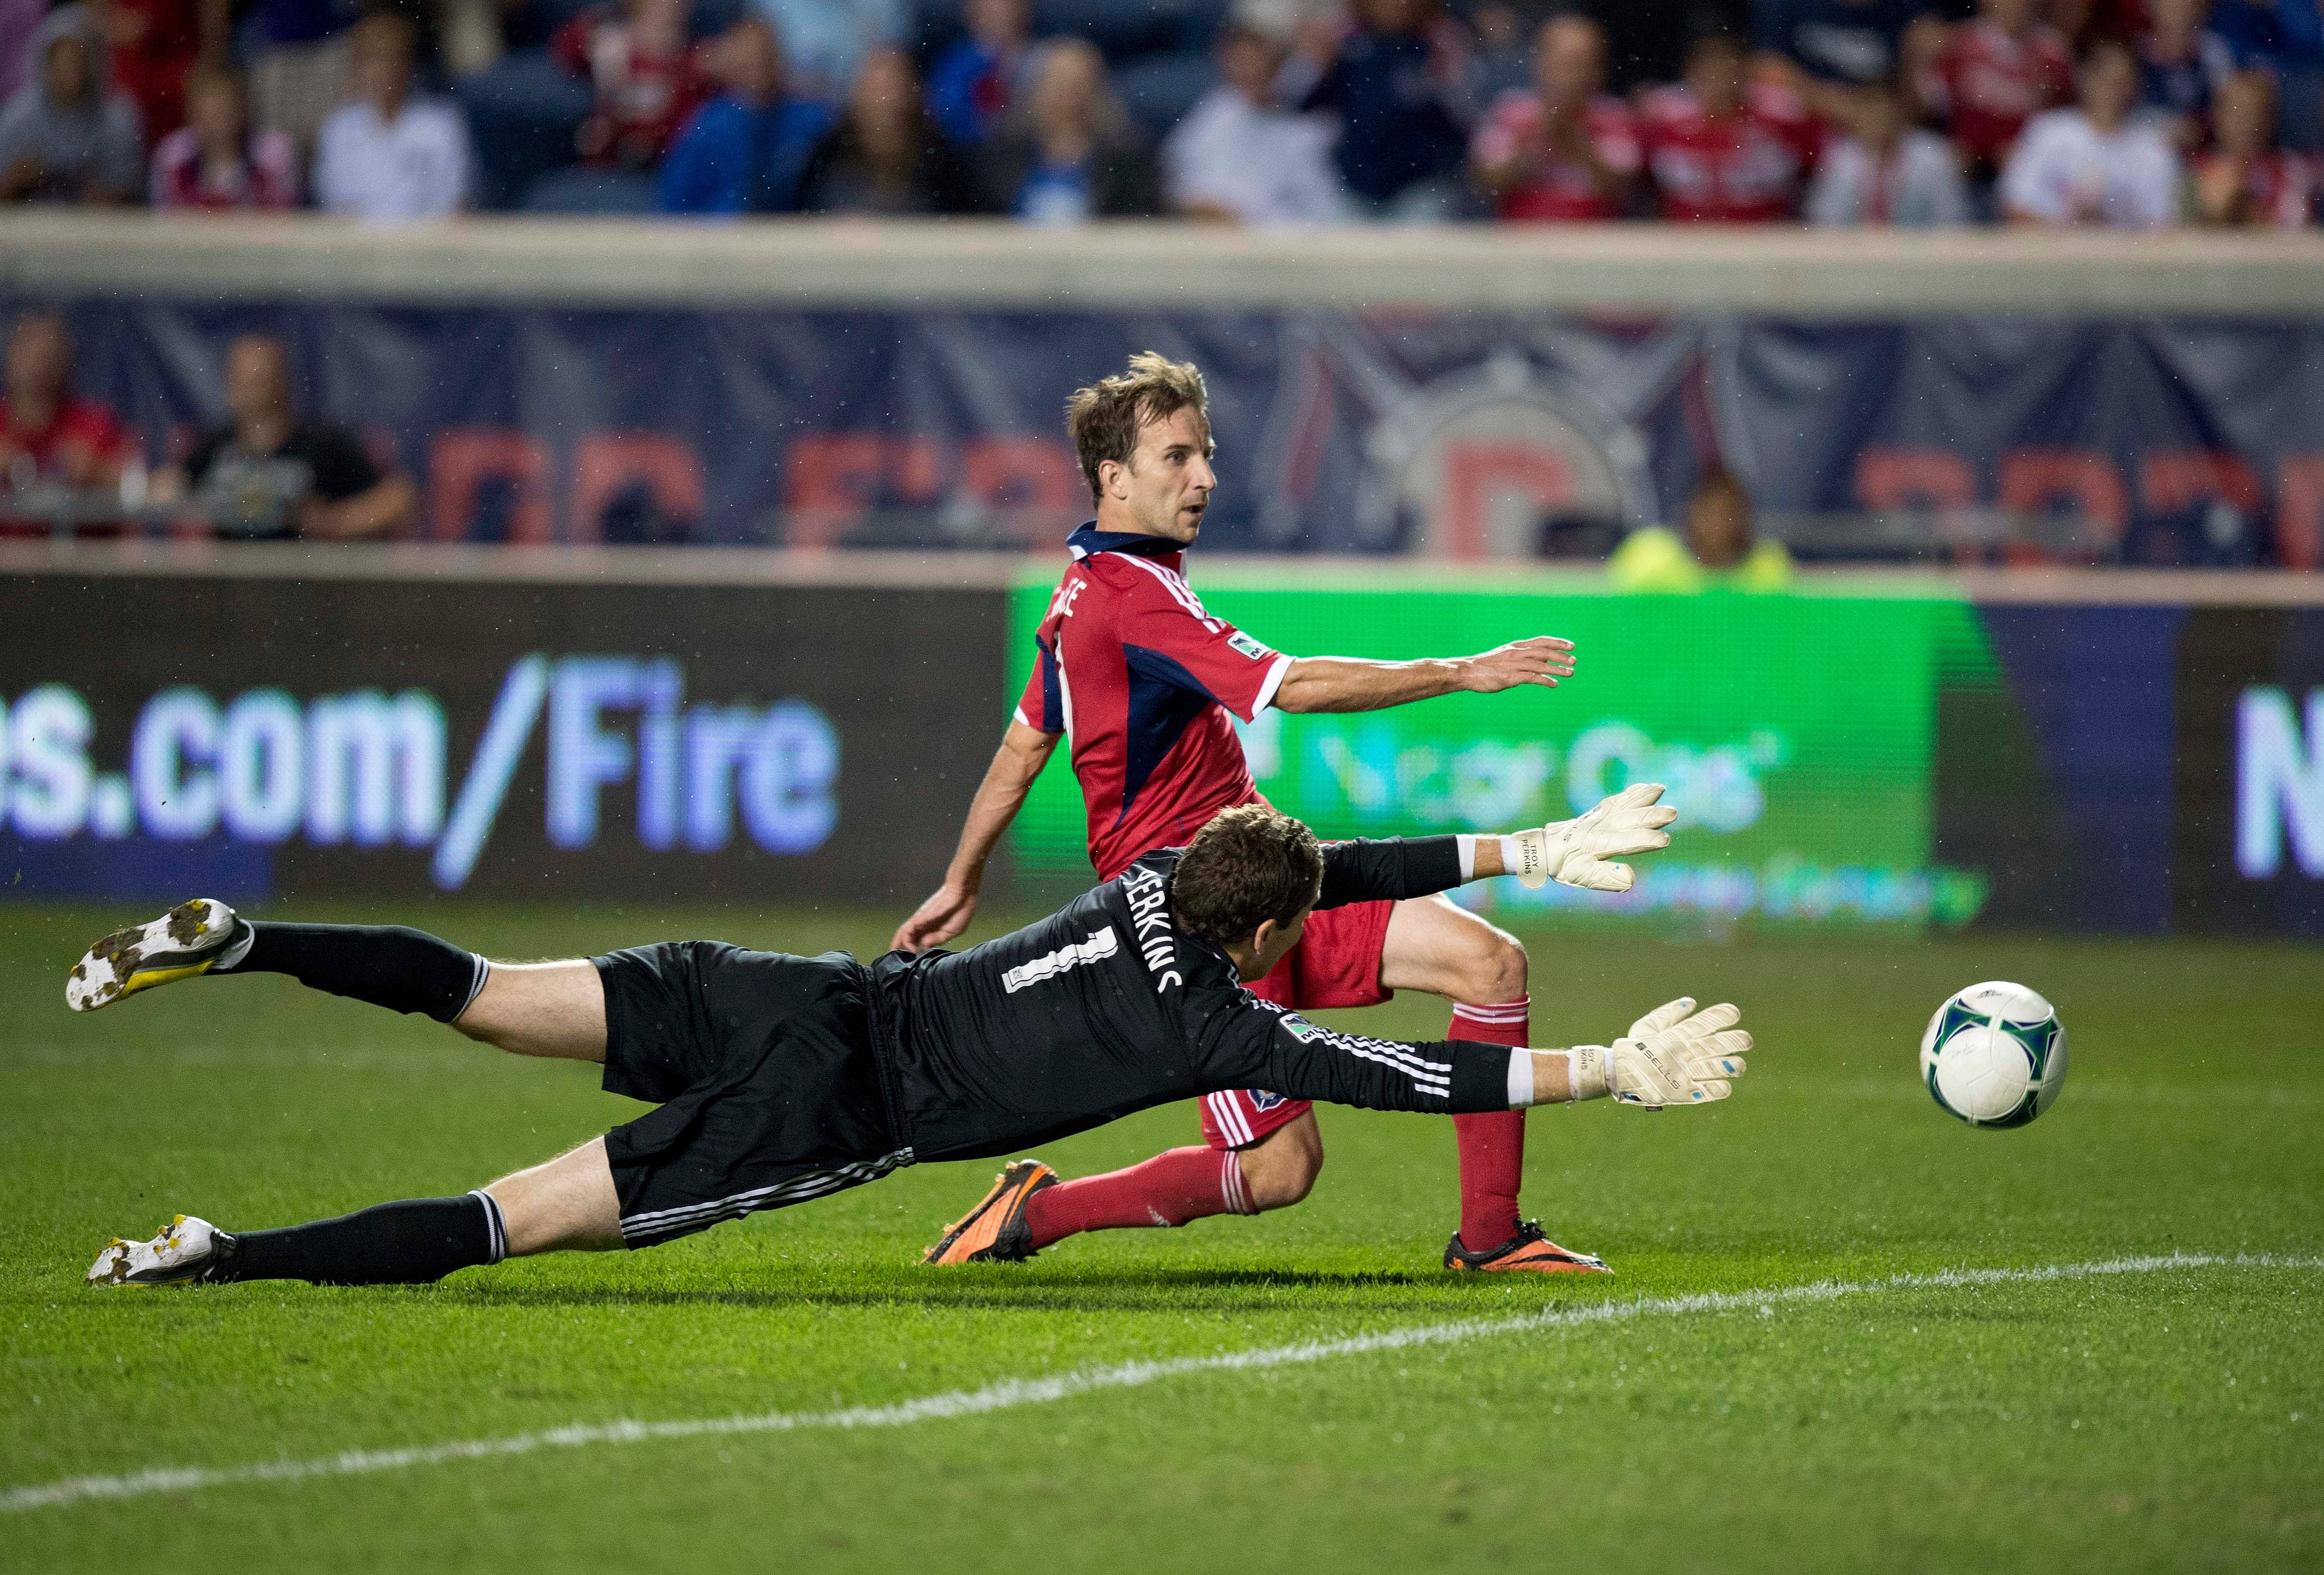 In this photo provided by the Chicago Fire, forward Mike Magee, left, scores past Montreal Impact goalkeeper Troy Perkins during a game last September.